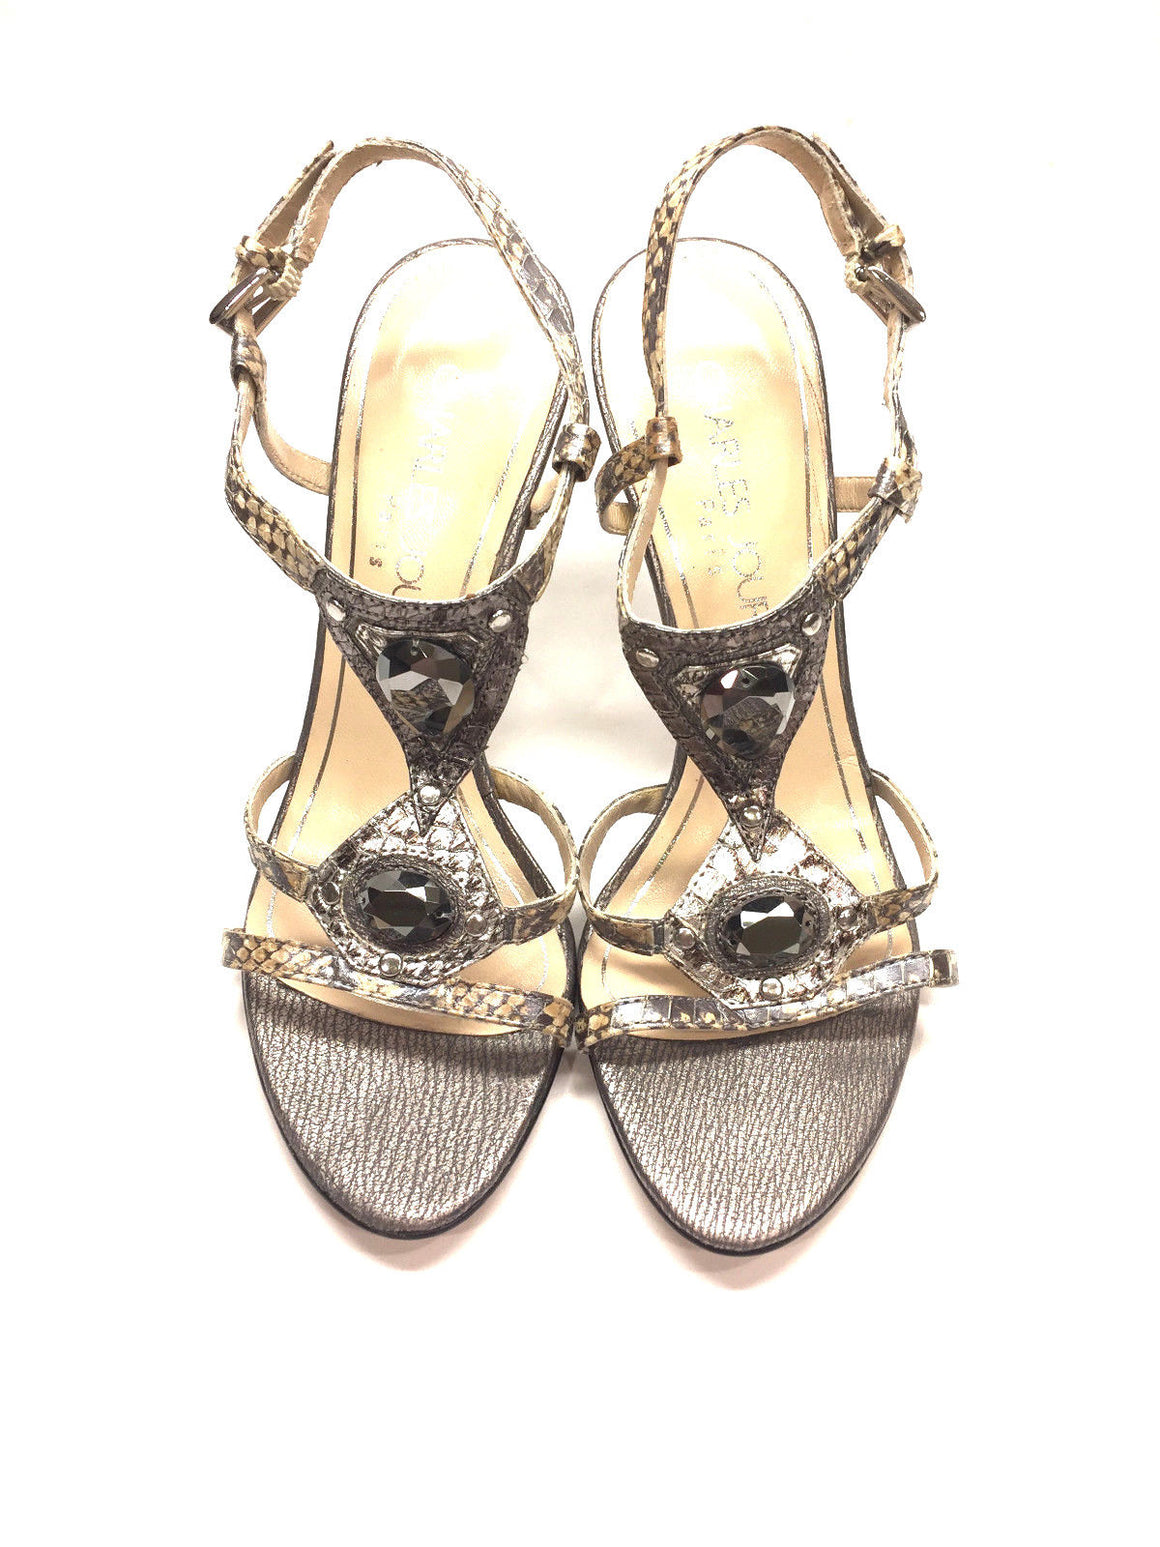 bisbiz.com CHARLES JOURDAN Beige/Silver-Gray Python Jeweled Ankle-Strap Heel Sandals Size: 6.5 - Bis Luxury Resale